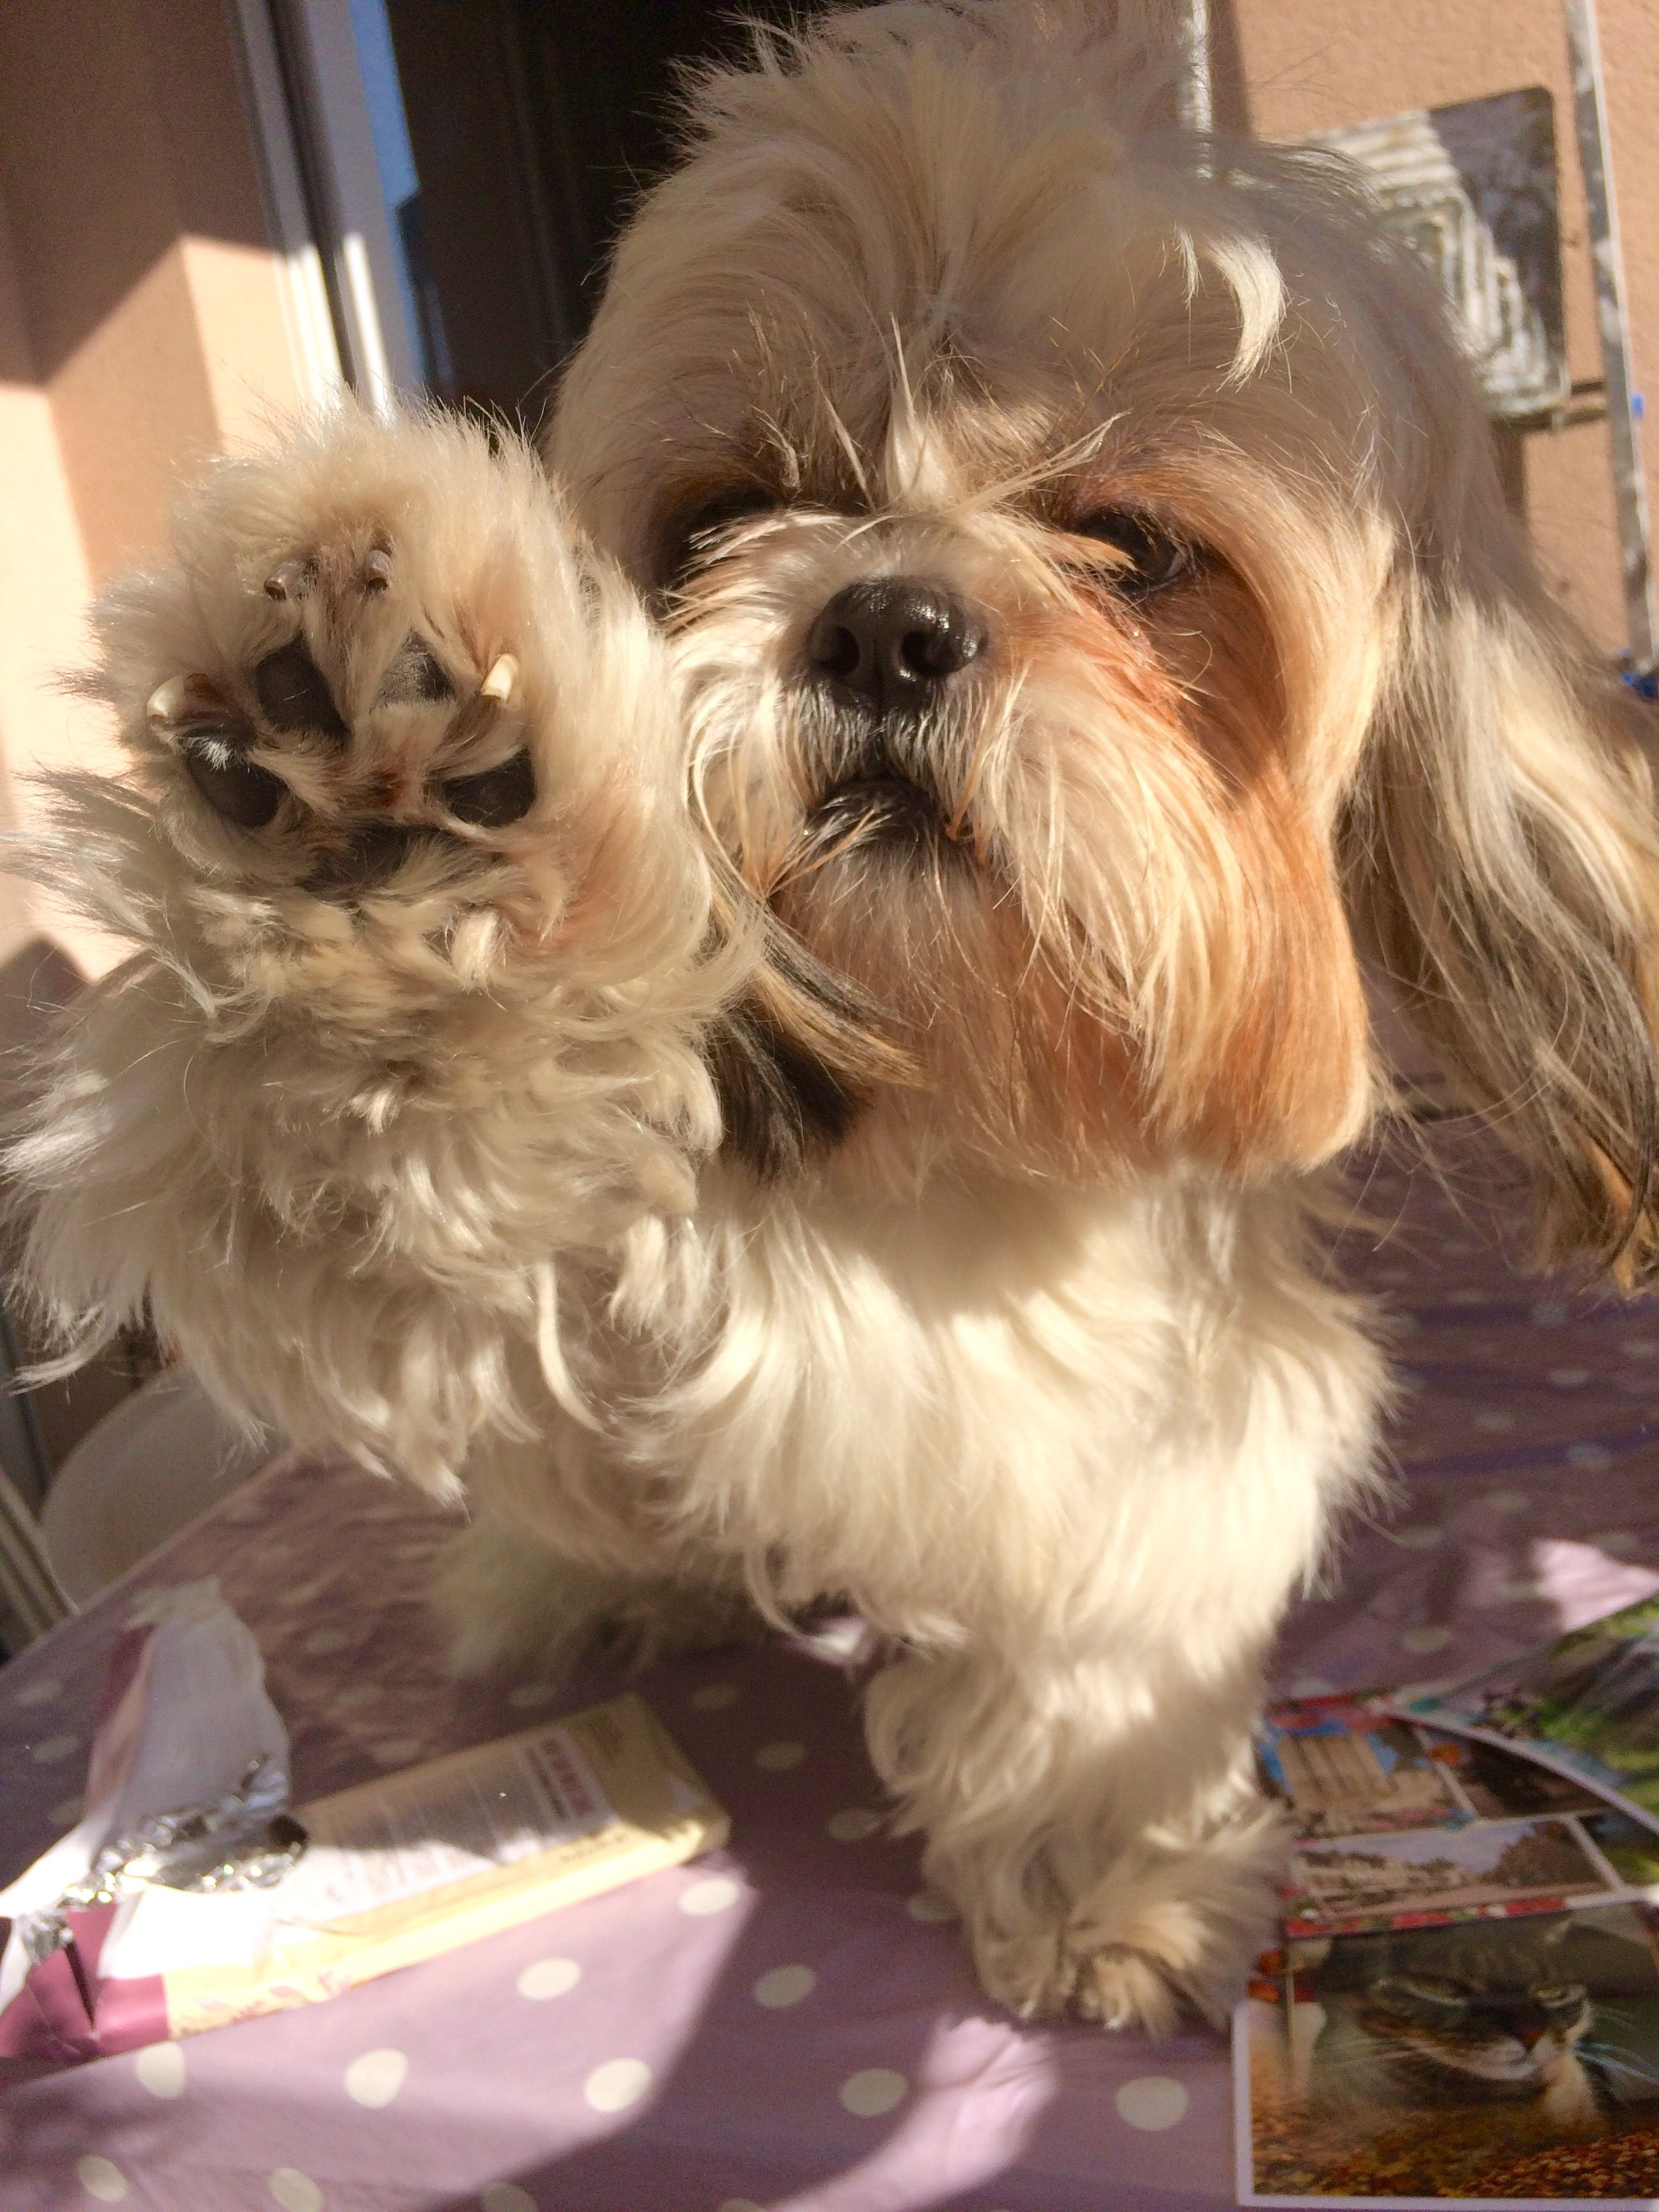 Pin By Carol Herrington On Loocky Un Shih Tzu Top Model Shih Tzu Dogs Shih Tzus